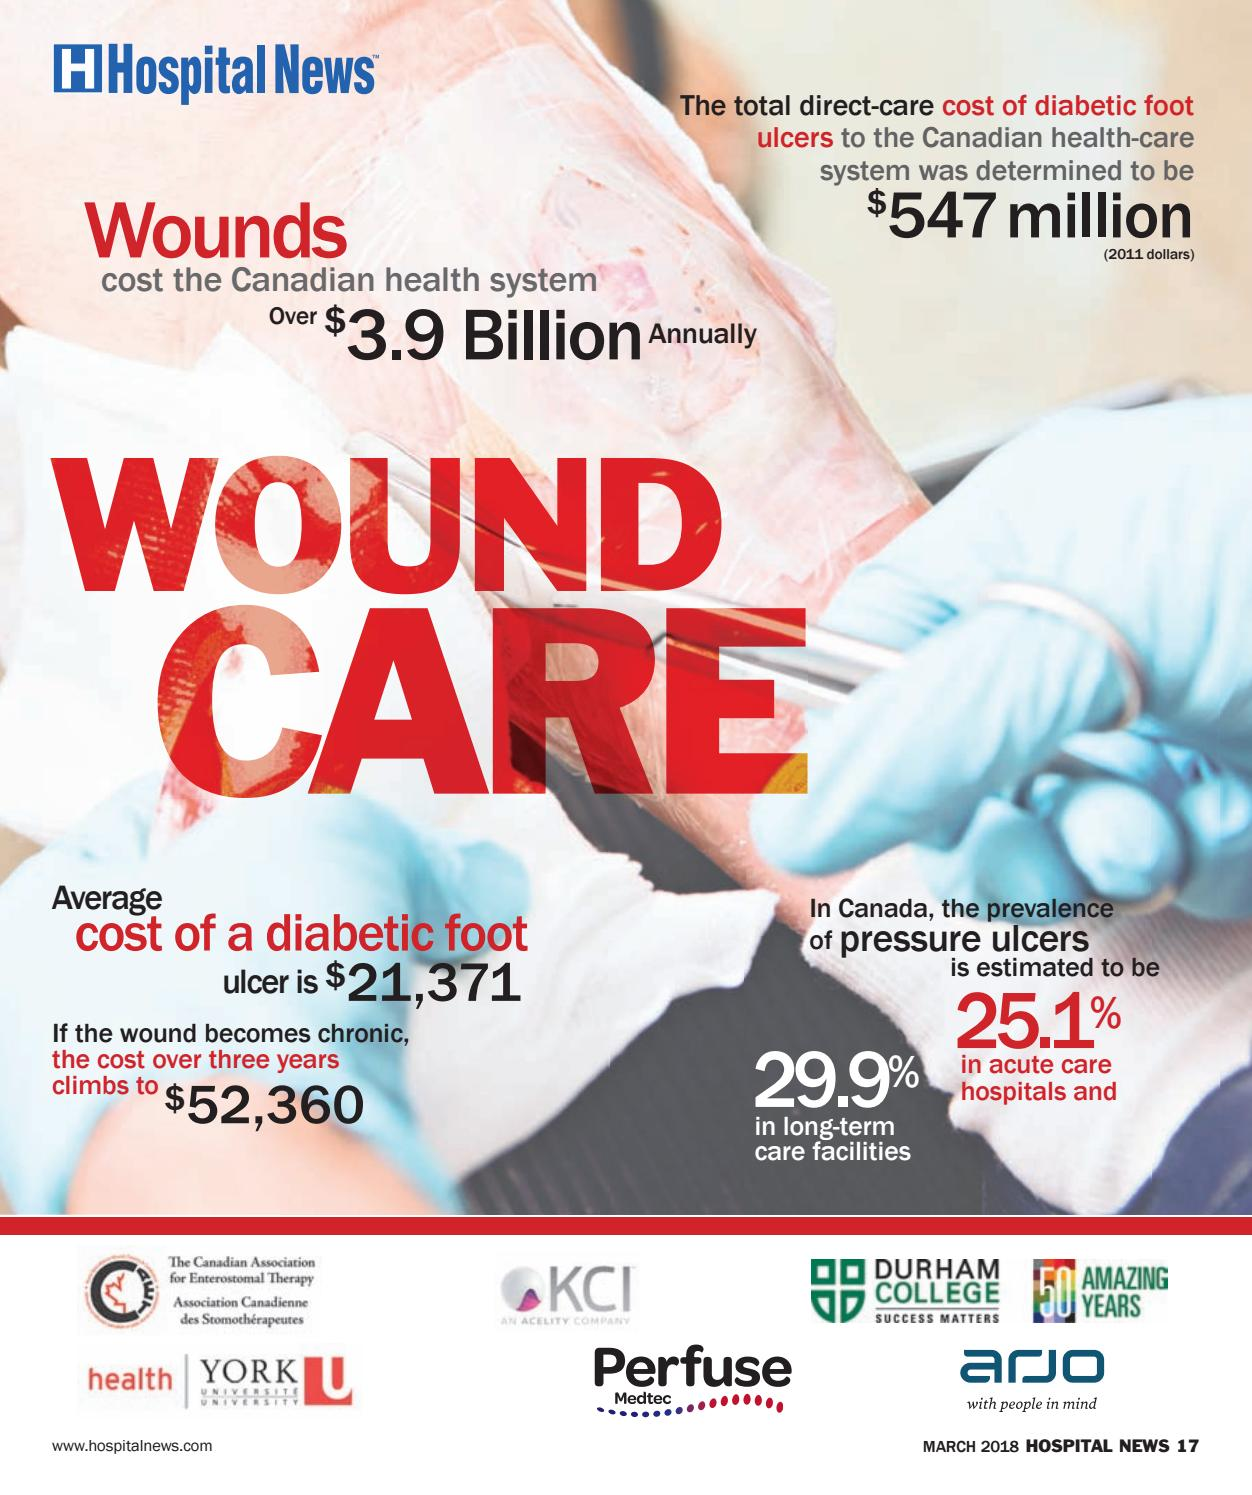 Hospital News Wound Care Supplement 2018 by Hospital News ...